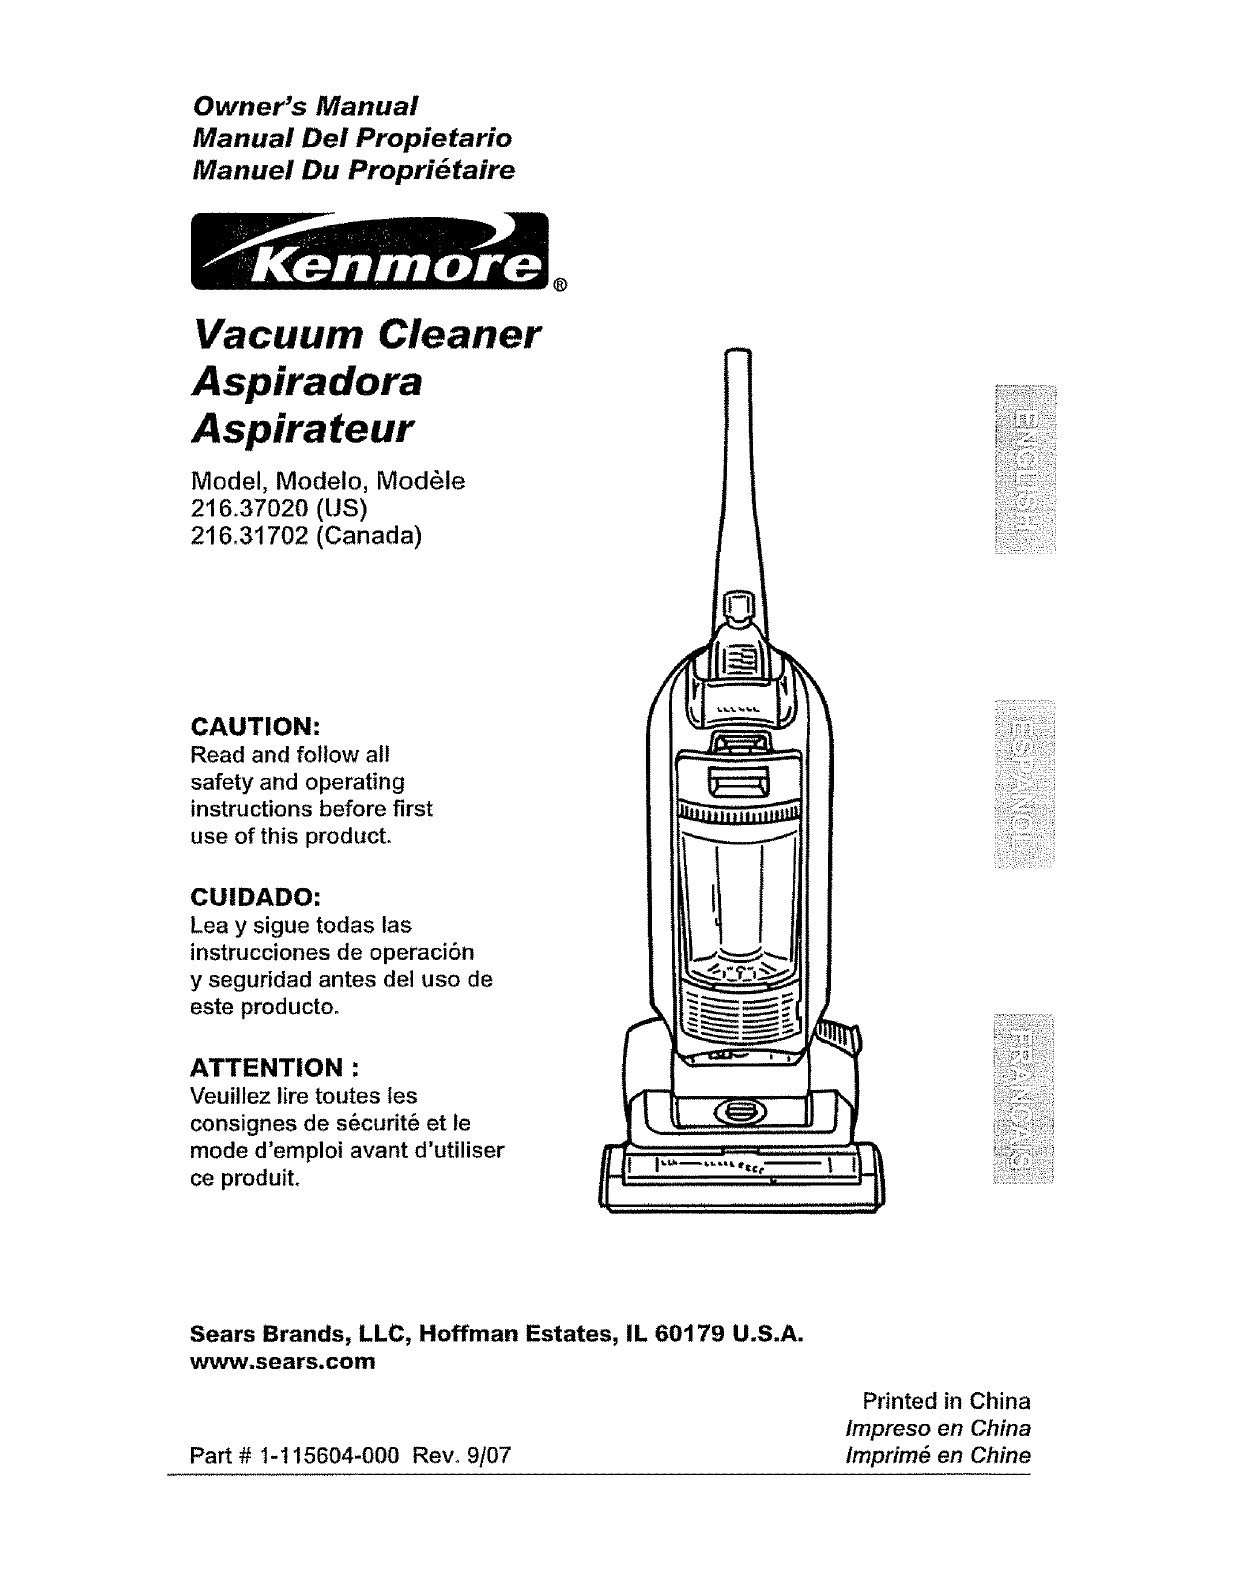 kenmore 21637020700 user manual vacuum manuals and guides l0711589 rh usermanual wiki sears vacuum manuals online sears vacuum manuals online